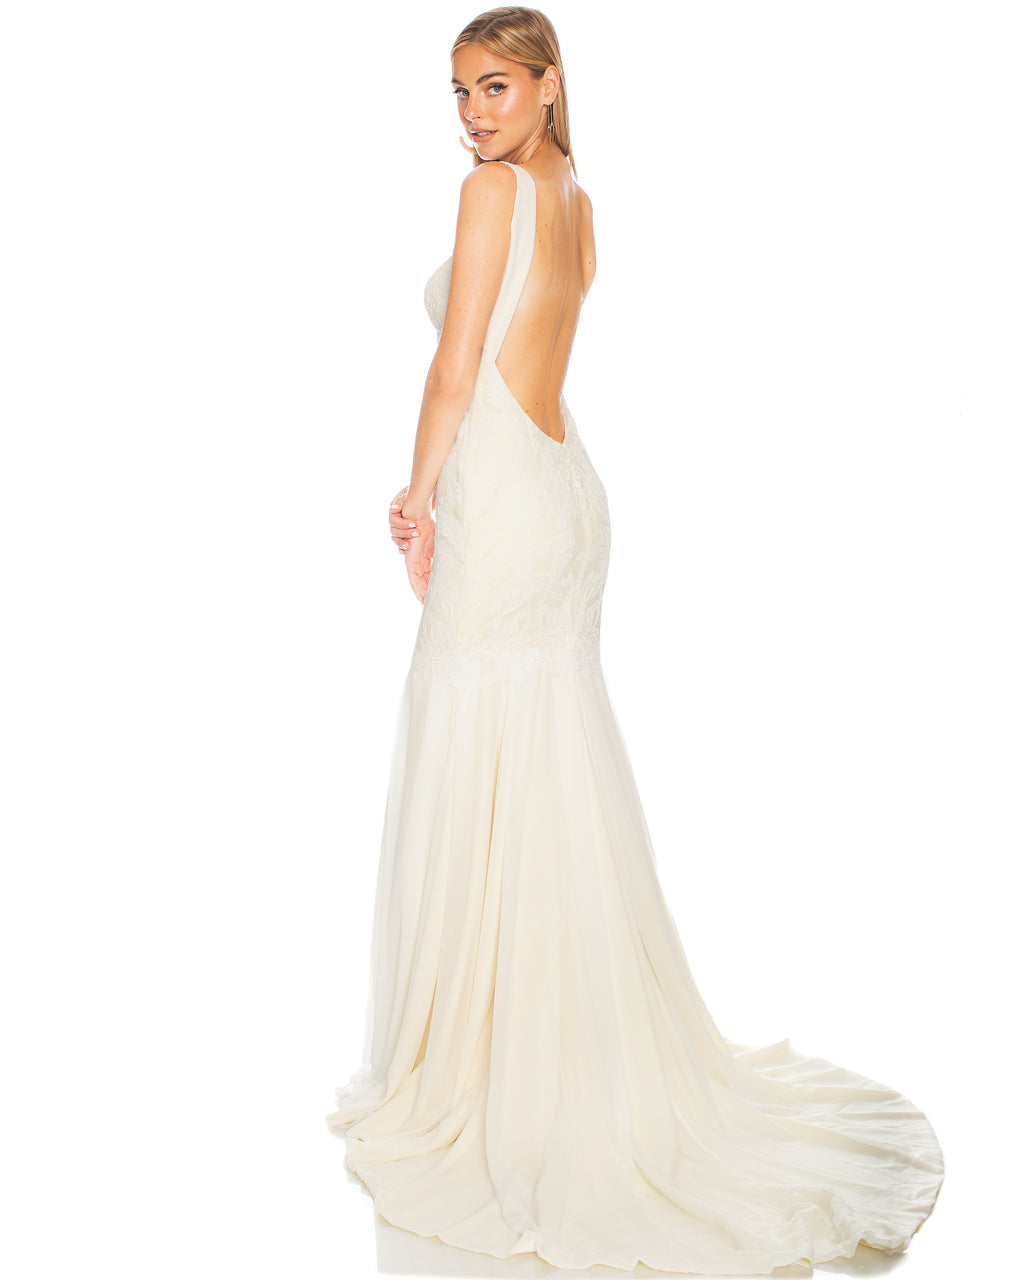 Model wearing Monaco bridal gown in Ivory/Champagne by Katie May